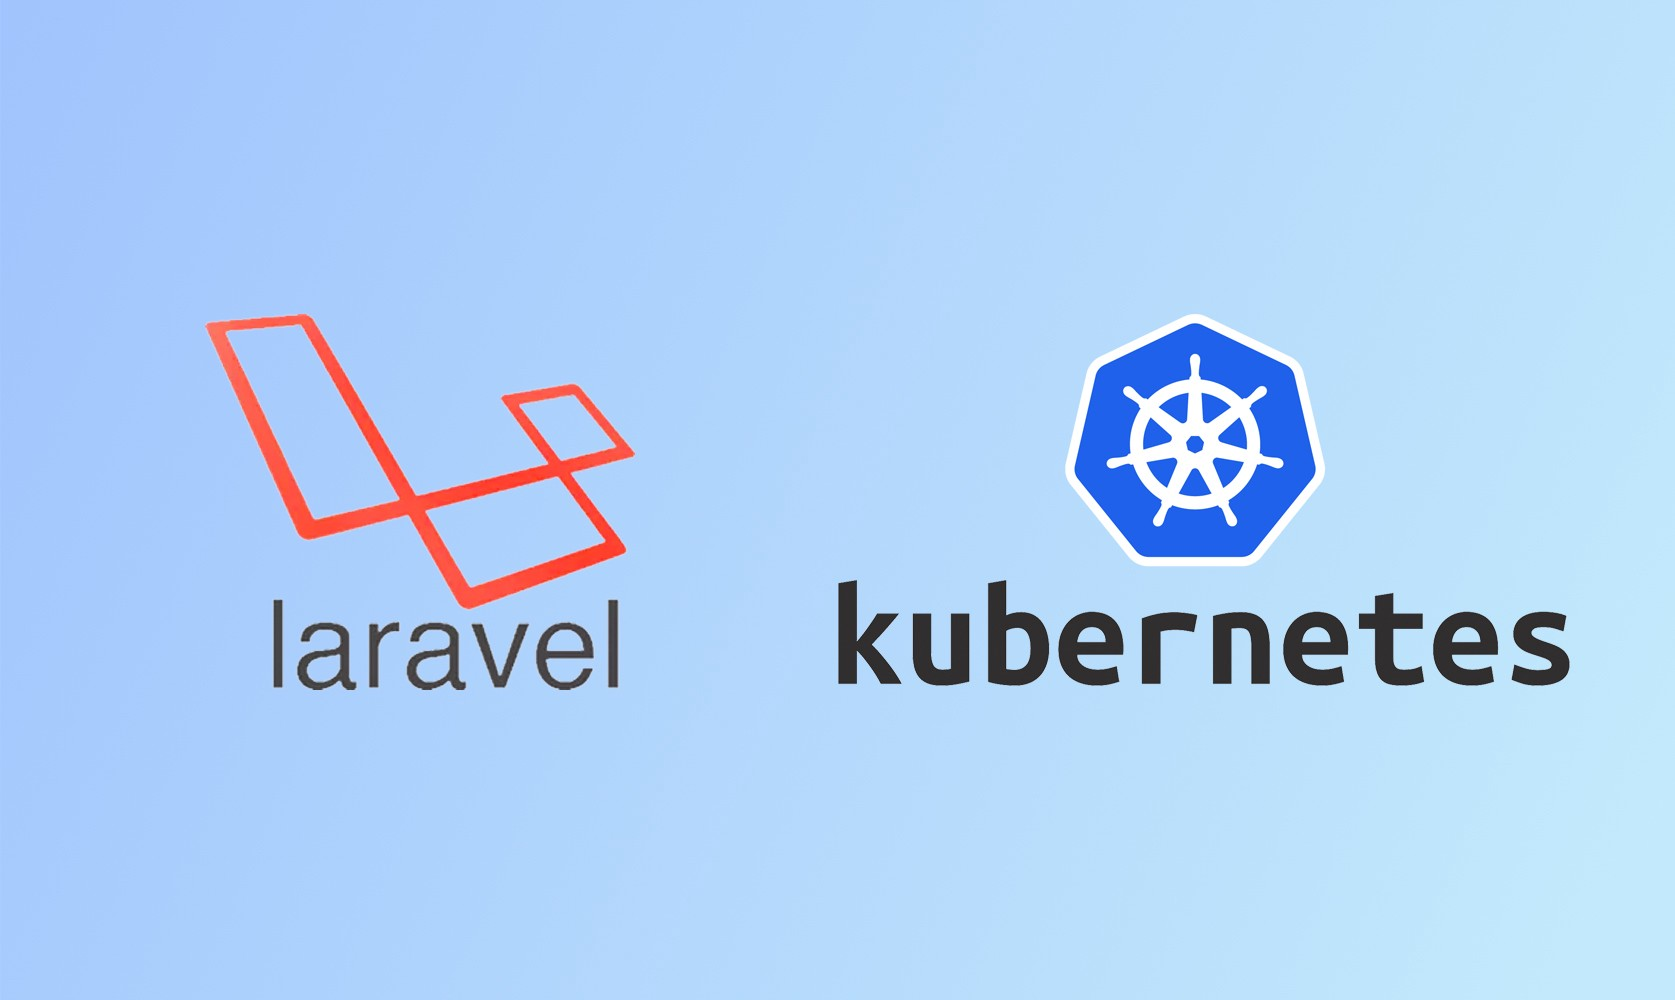 How to deploy Laravel Application to Kubernetes - Edward Mok